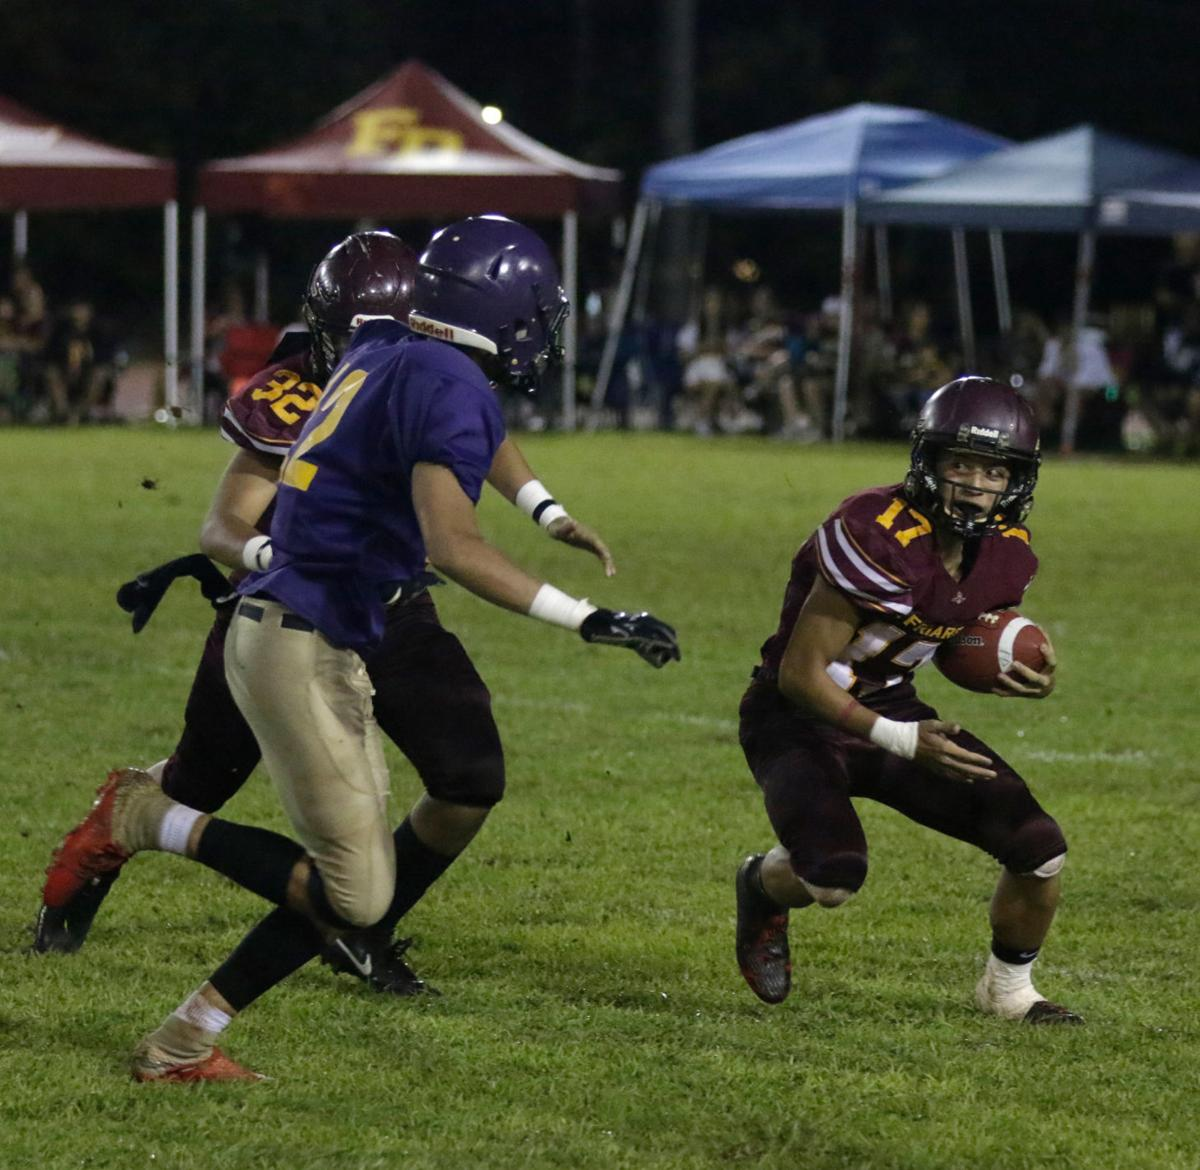 Calugay looks to kick off Team Alliance for private school football